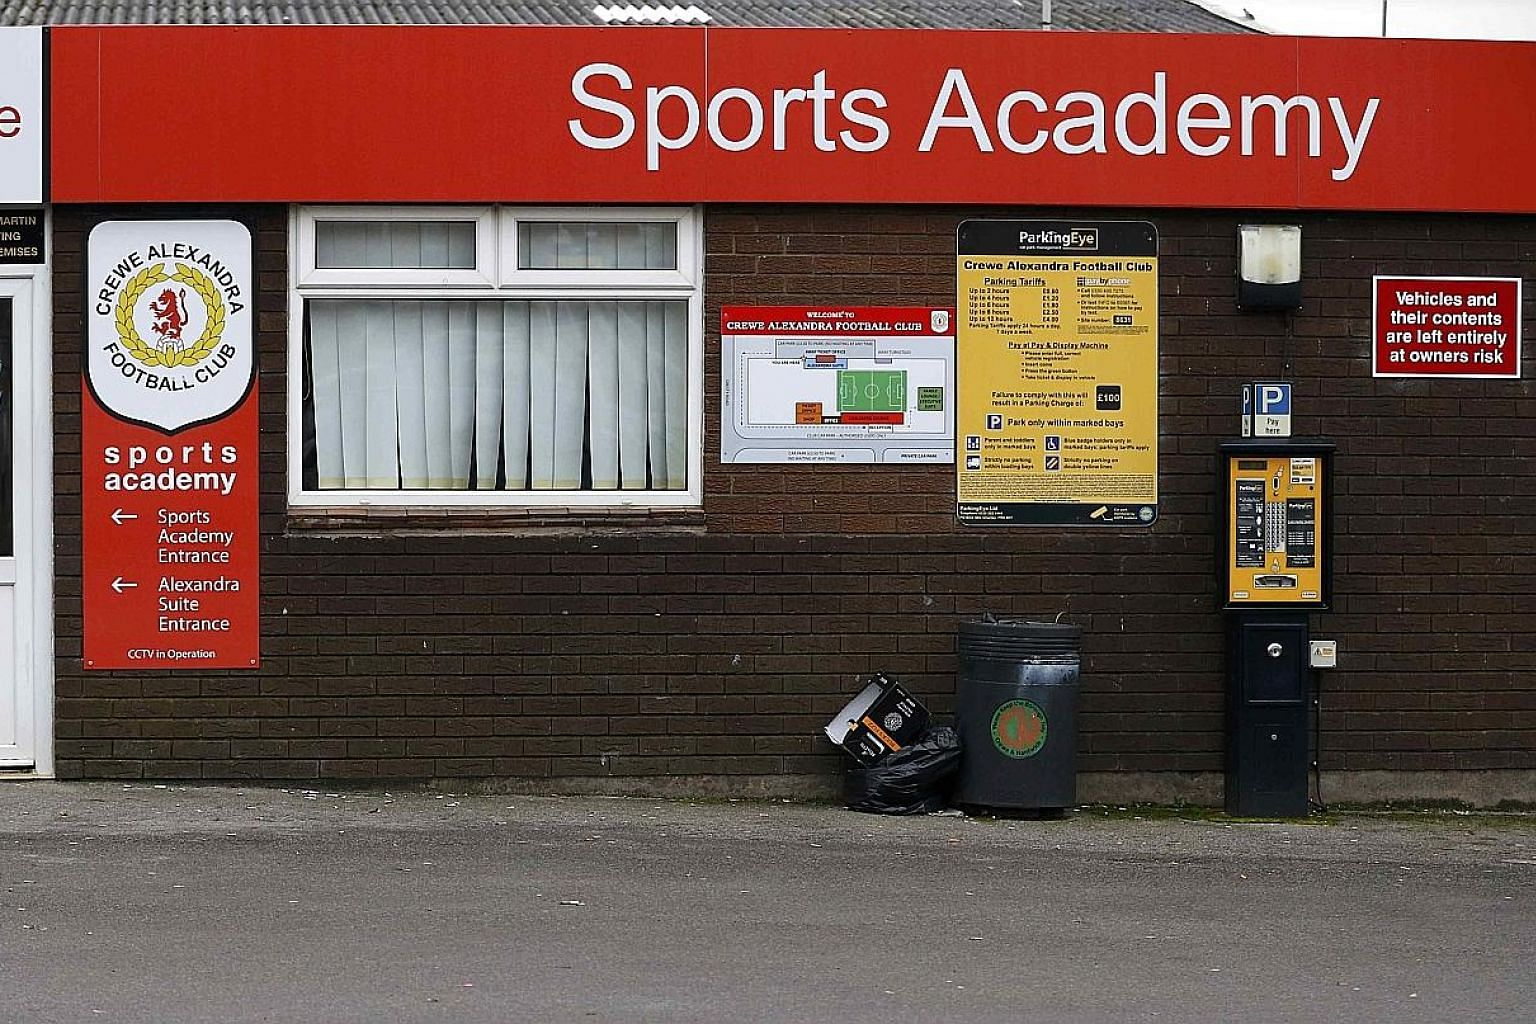 League Two side Crewe Alexandra's ground, one of the sites where Barry Bennell was alleged to have groomed his targets for child abuse. At least 20 former footballers have come out to relate their horrifying experiences.